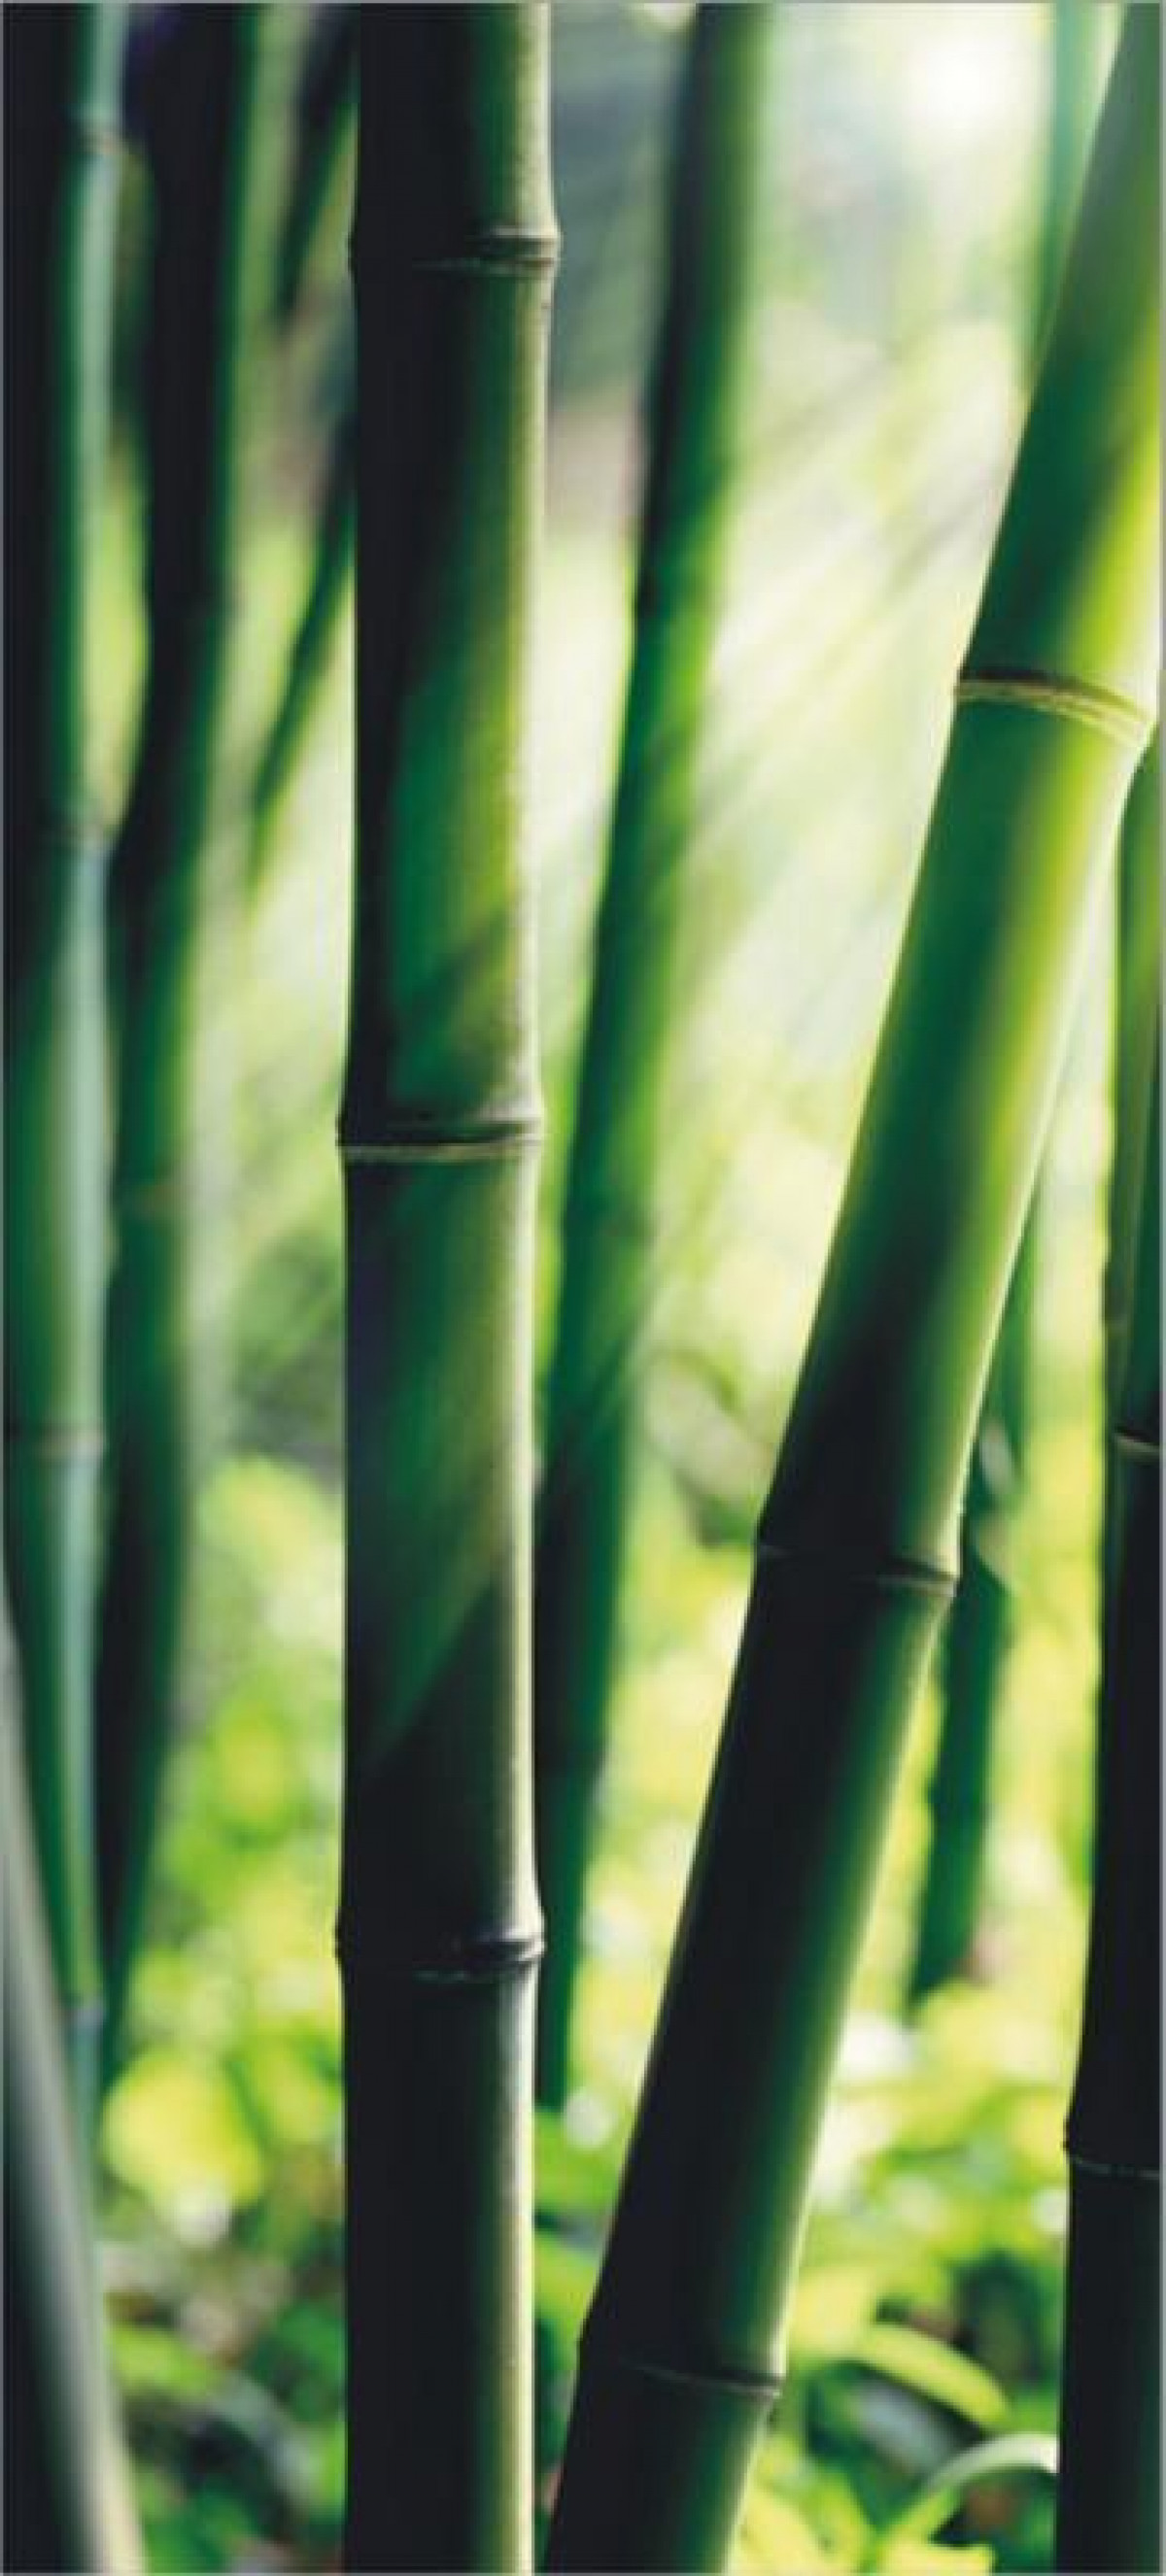 Bamboo, paper photo mural, 90x202 cm, 1 part